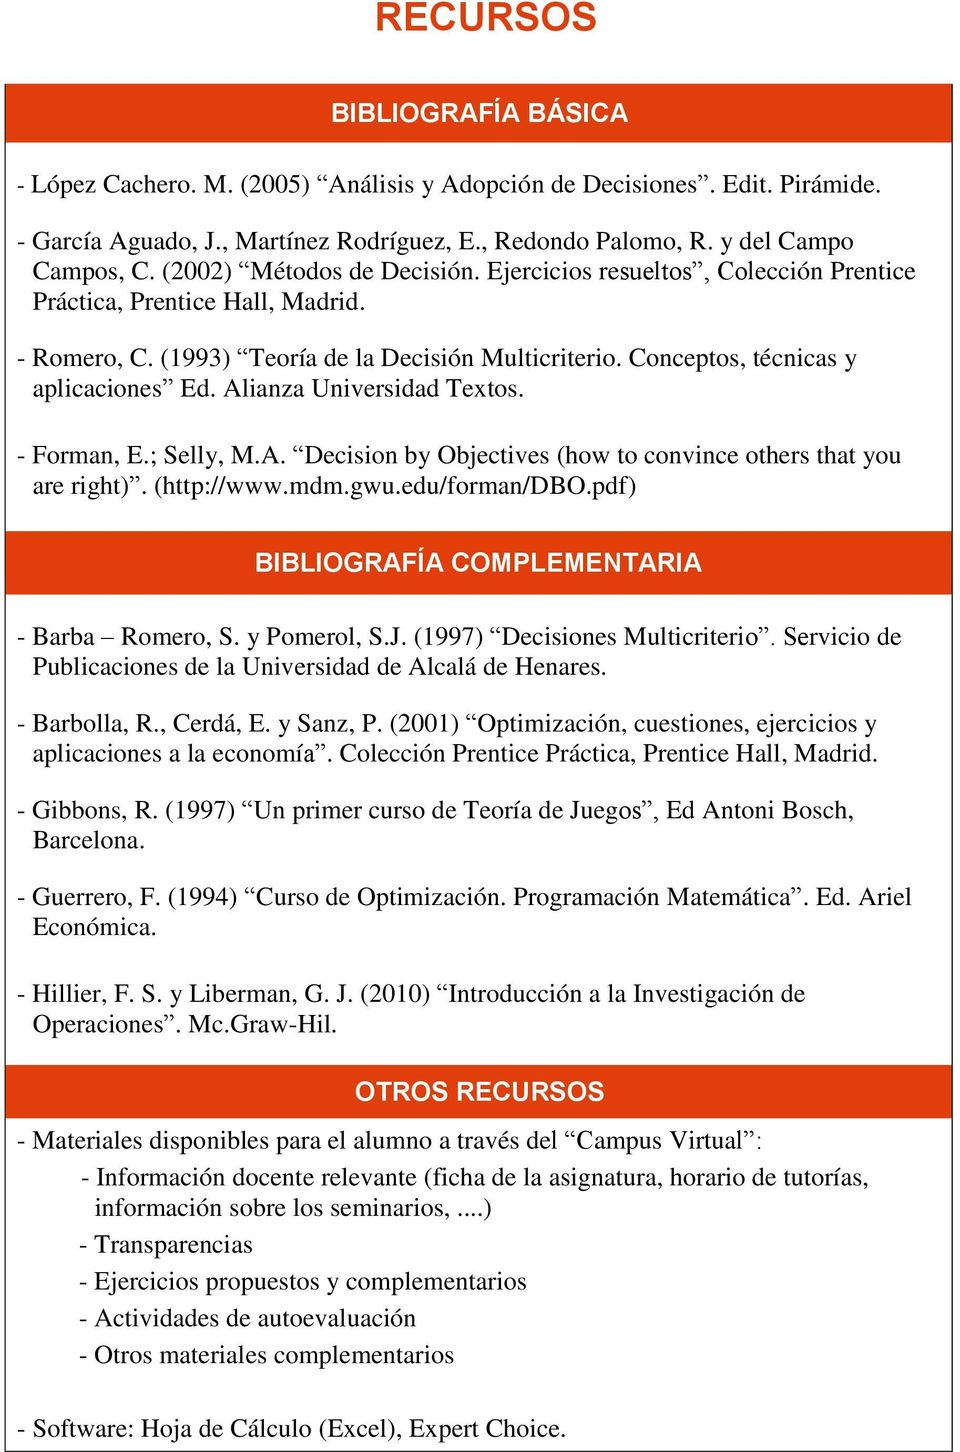 Alianza Universidad Textos. - Forman, E.; Selly, M.A. Decision by Objectives (how to convince others that you are right). (http://www.mdm.gwu.edu/forman/dbo.